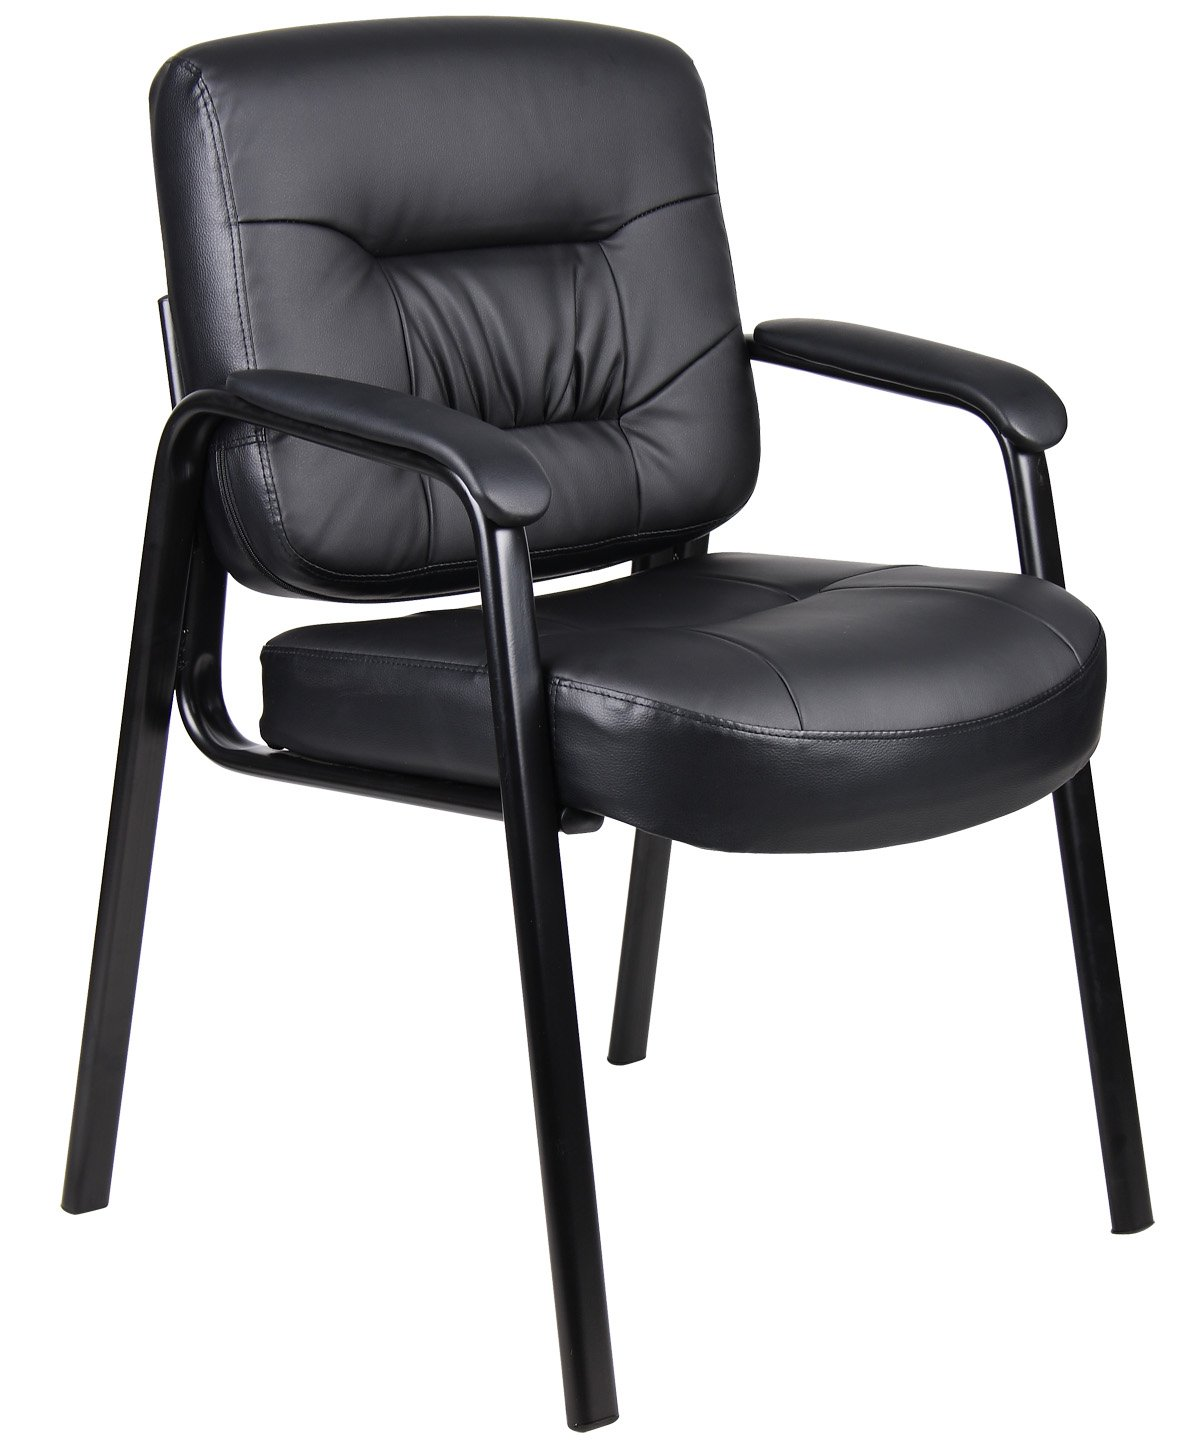 Genial Amazon.com: Boss Office Products B7509 Executive Mid Back LeatherPlus Guest  Chair In Black: Kitchen U0026 Dining